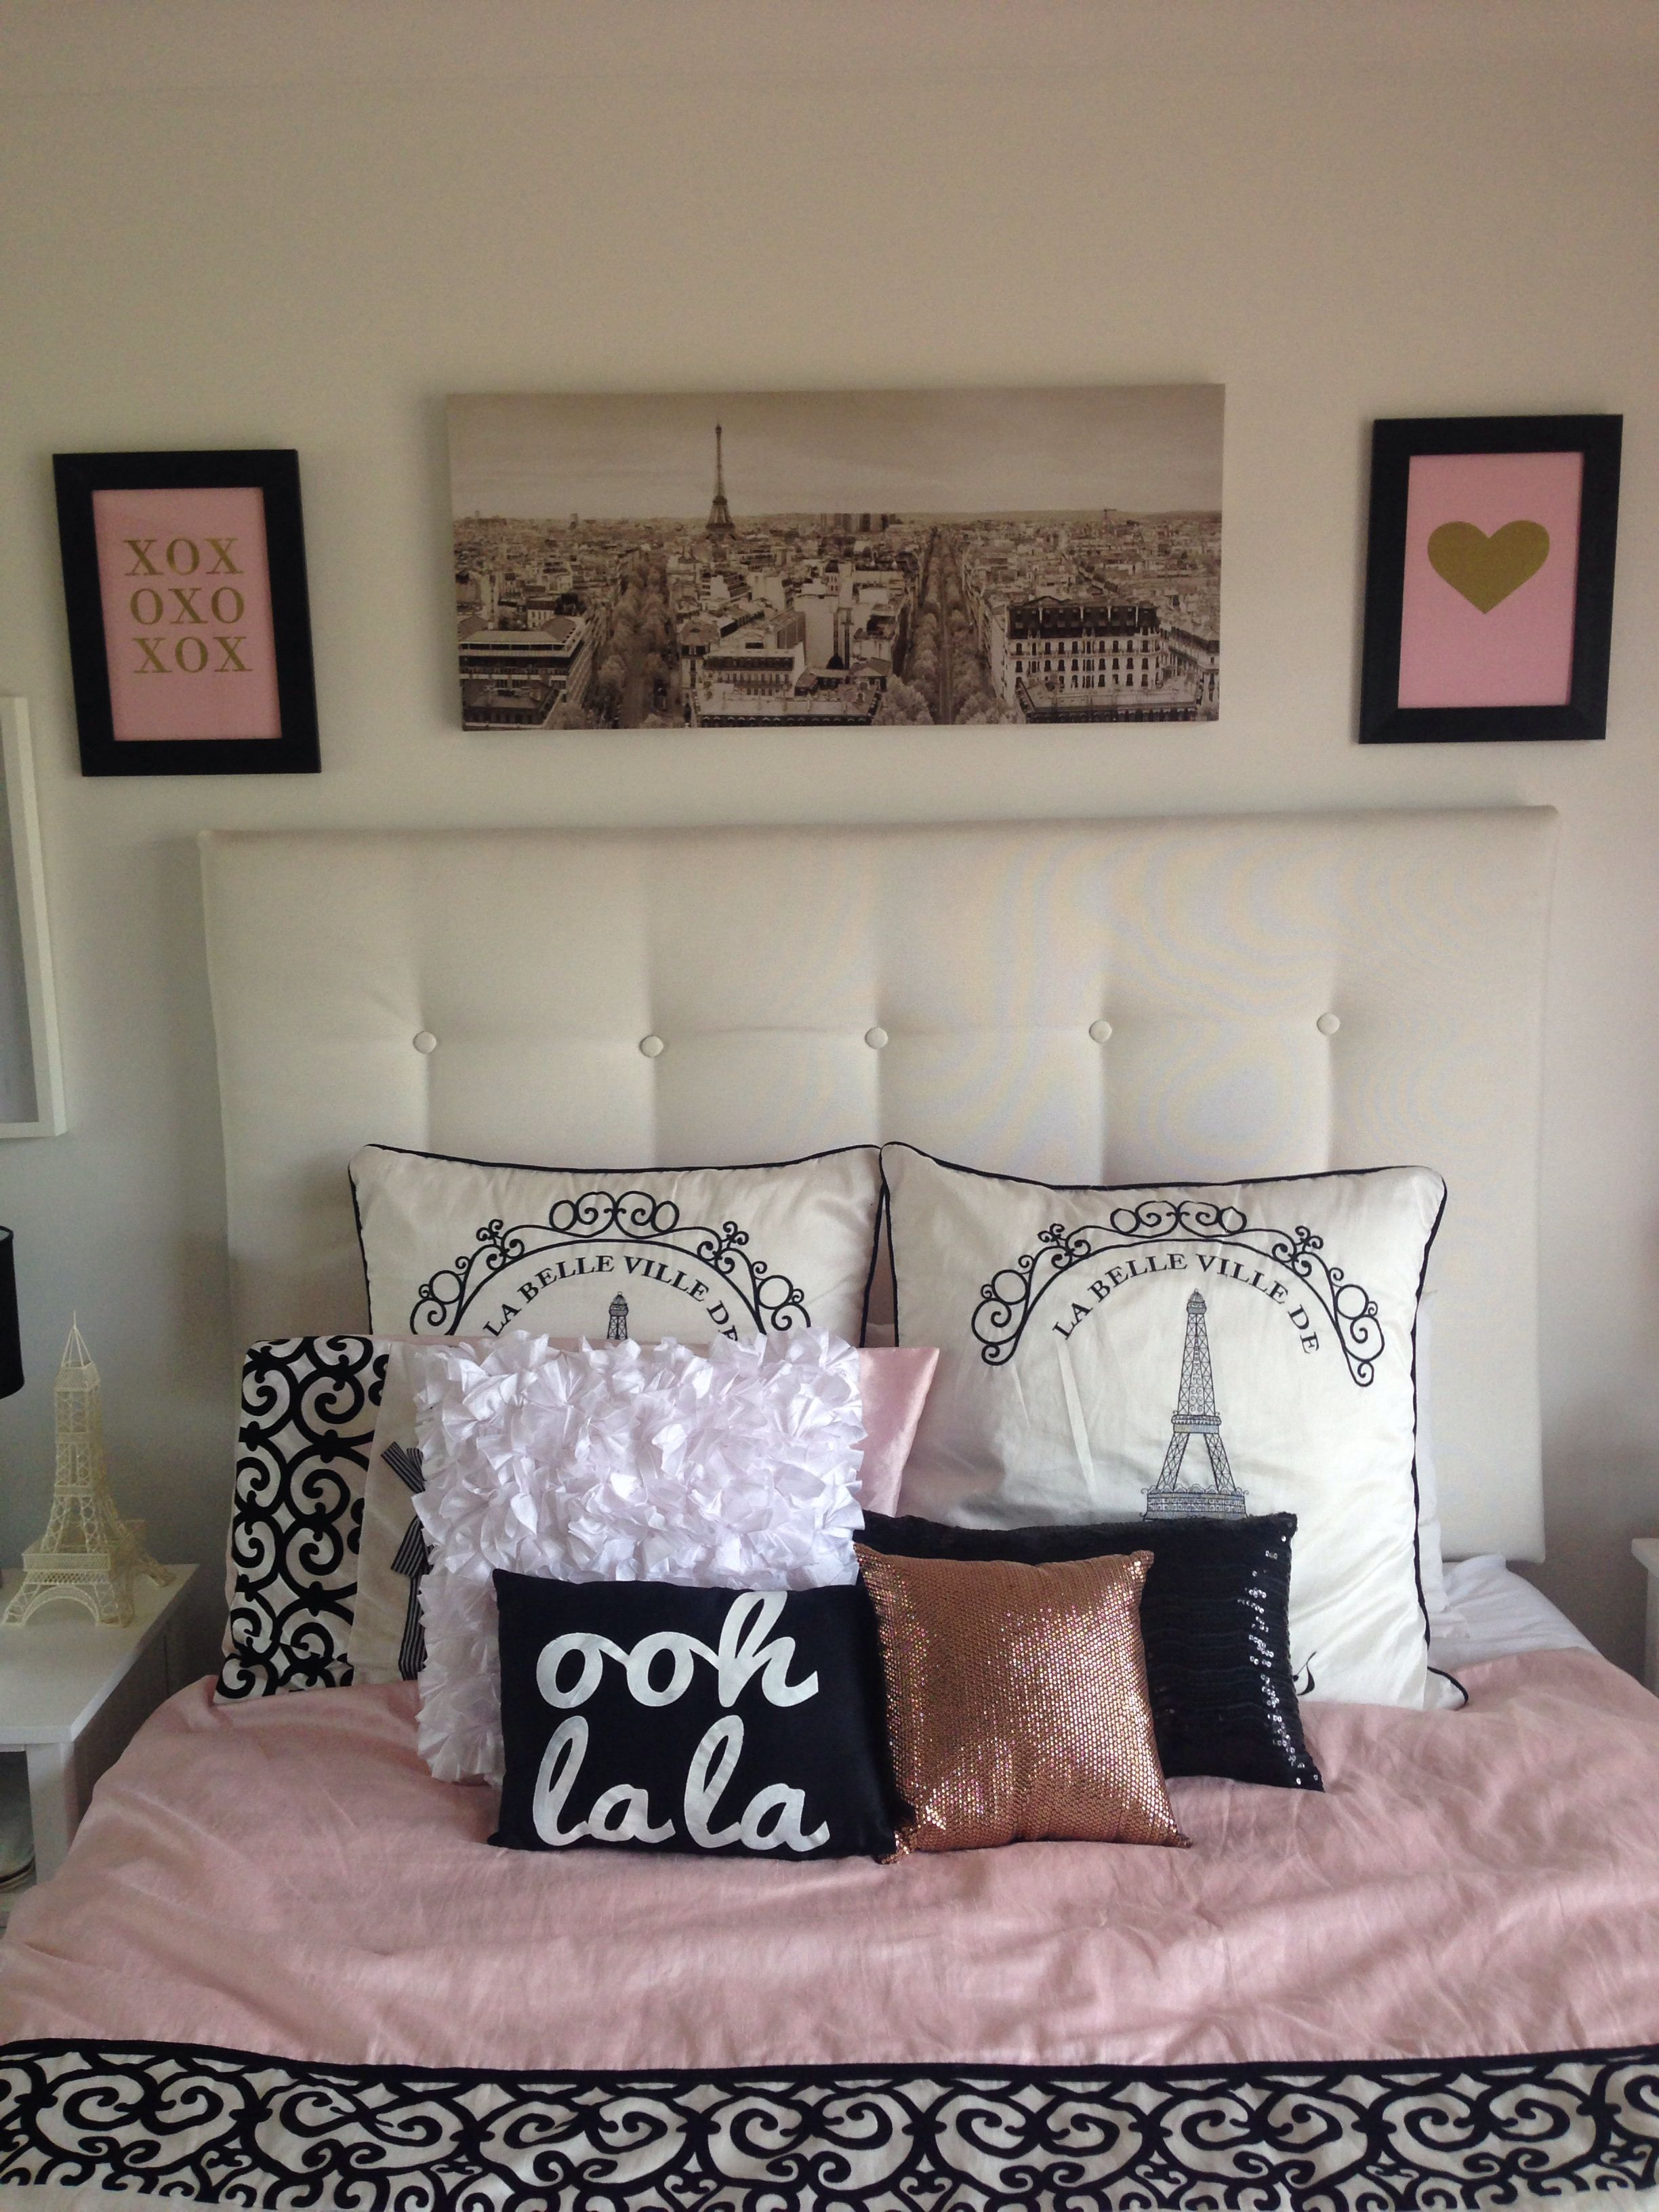 Find this Pin and more on Bedrooms by woodrailing. We love how  Cassandra Guild Nicholas has displayed her Miss Poppy